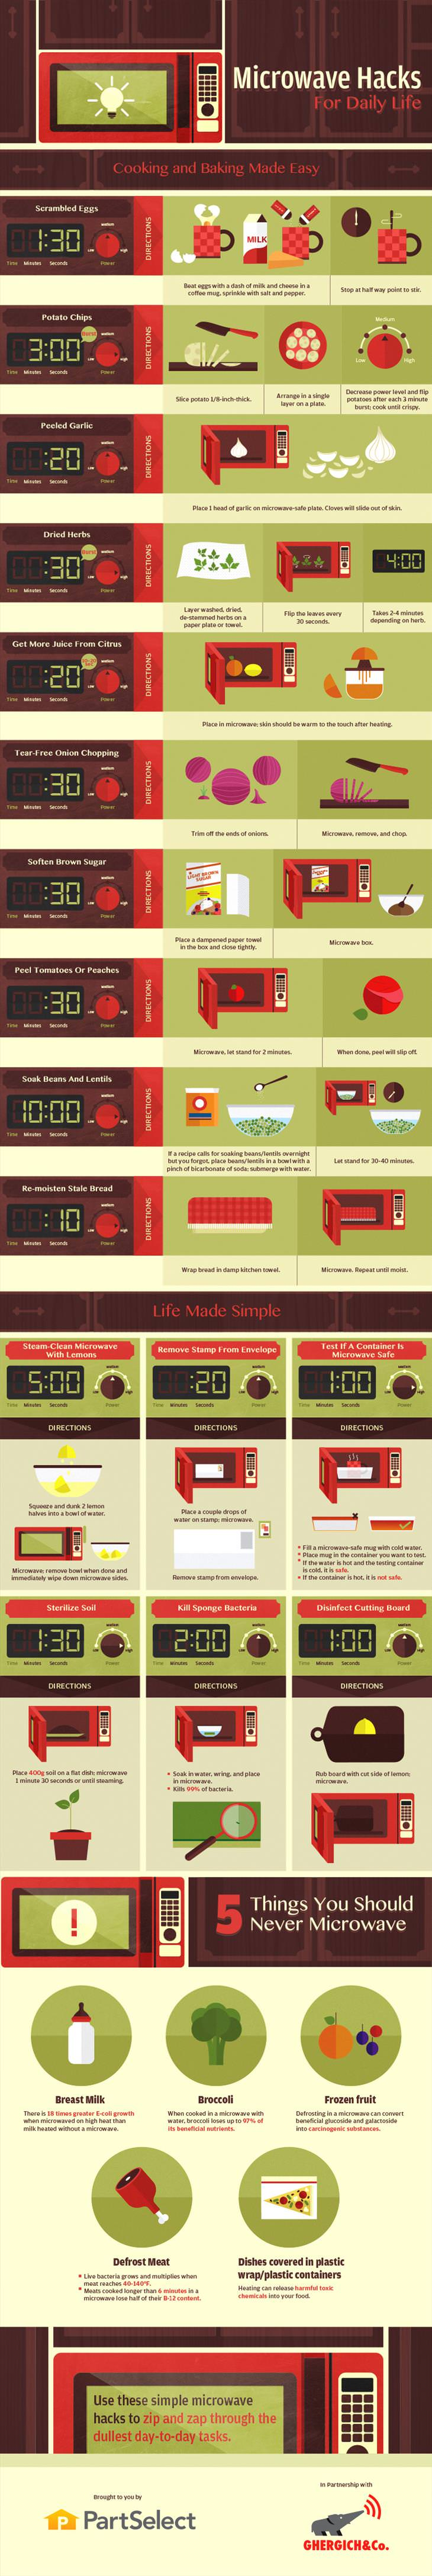 microwave tips infographic